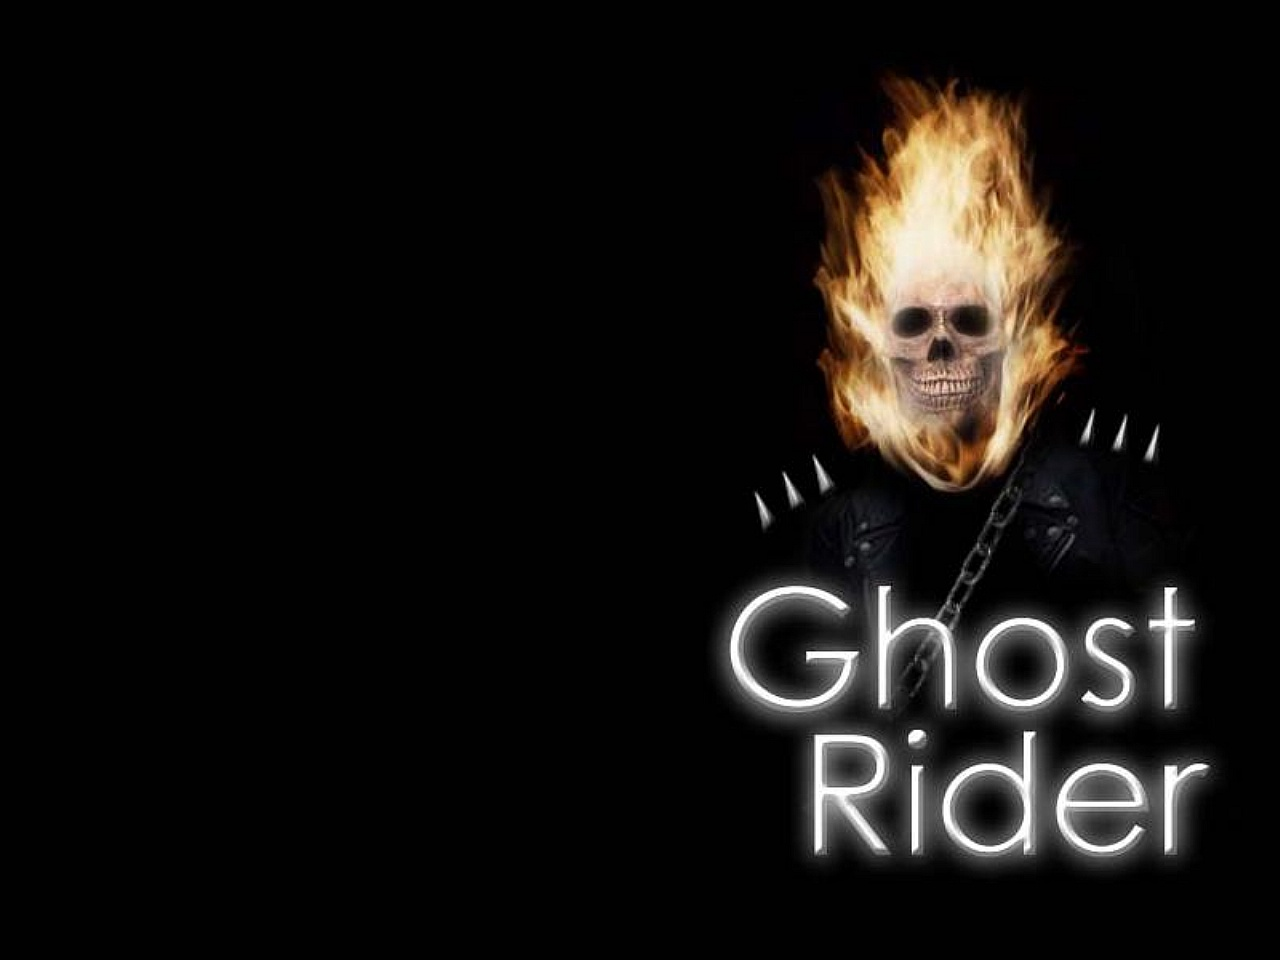 ghost rider wallpaper picture ghost rider desktop picture green arrow 1280x960